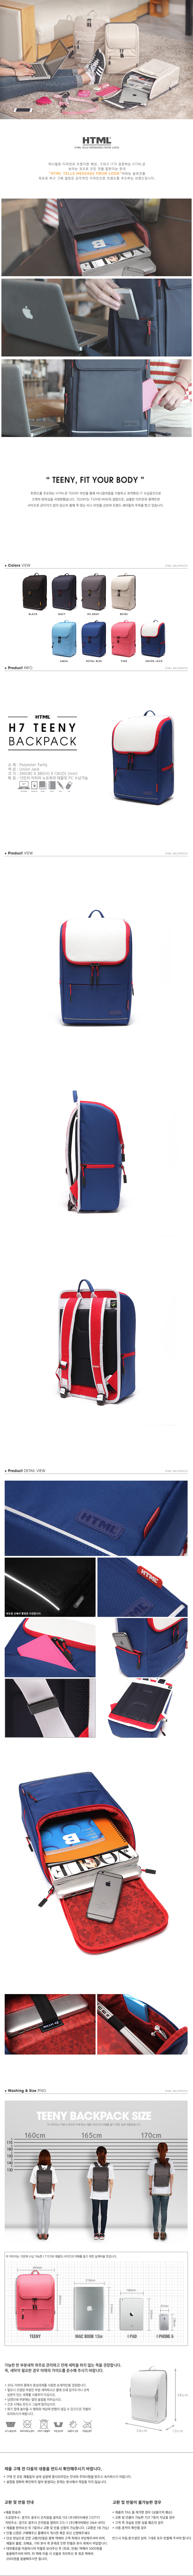 [에이치티엠엘]HTML-NEW H7 WOMAN TEENY Backpack (UNION JACK) 티니 백팩